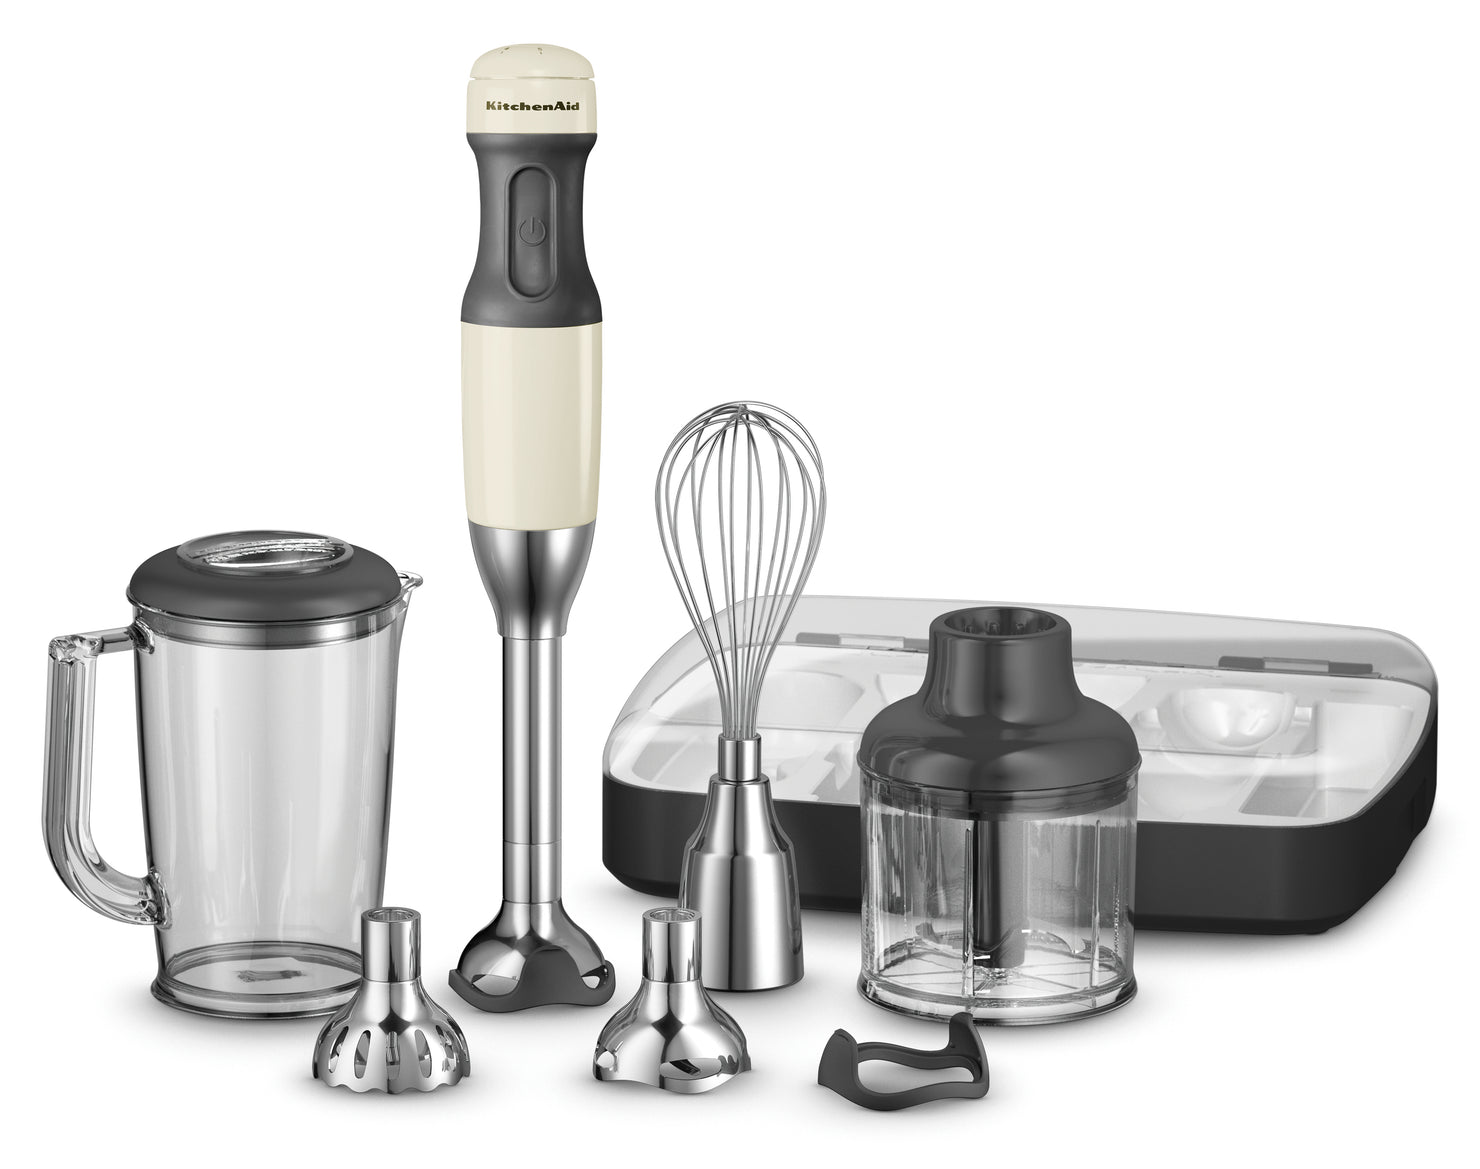 Specialty Appliances|Find a Niche That Matches Your Specialty Appliances-Kitchenaid 3 Speed Hand Blender Review